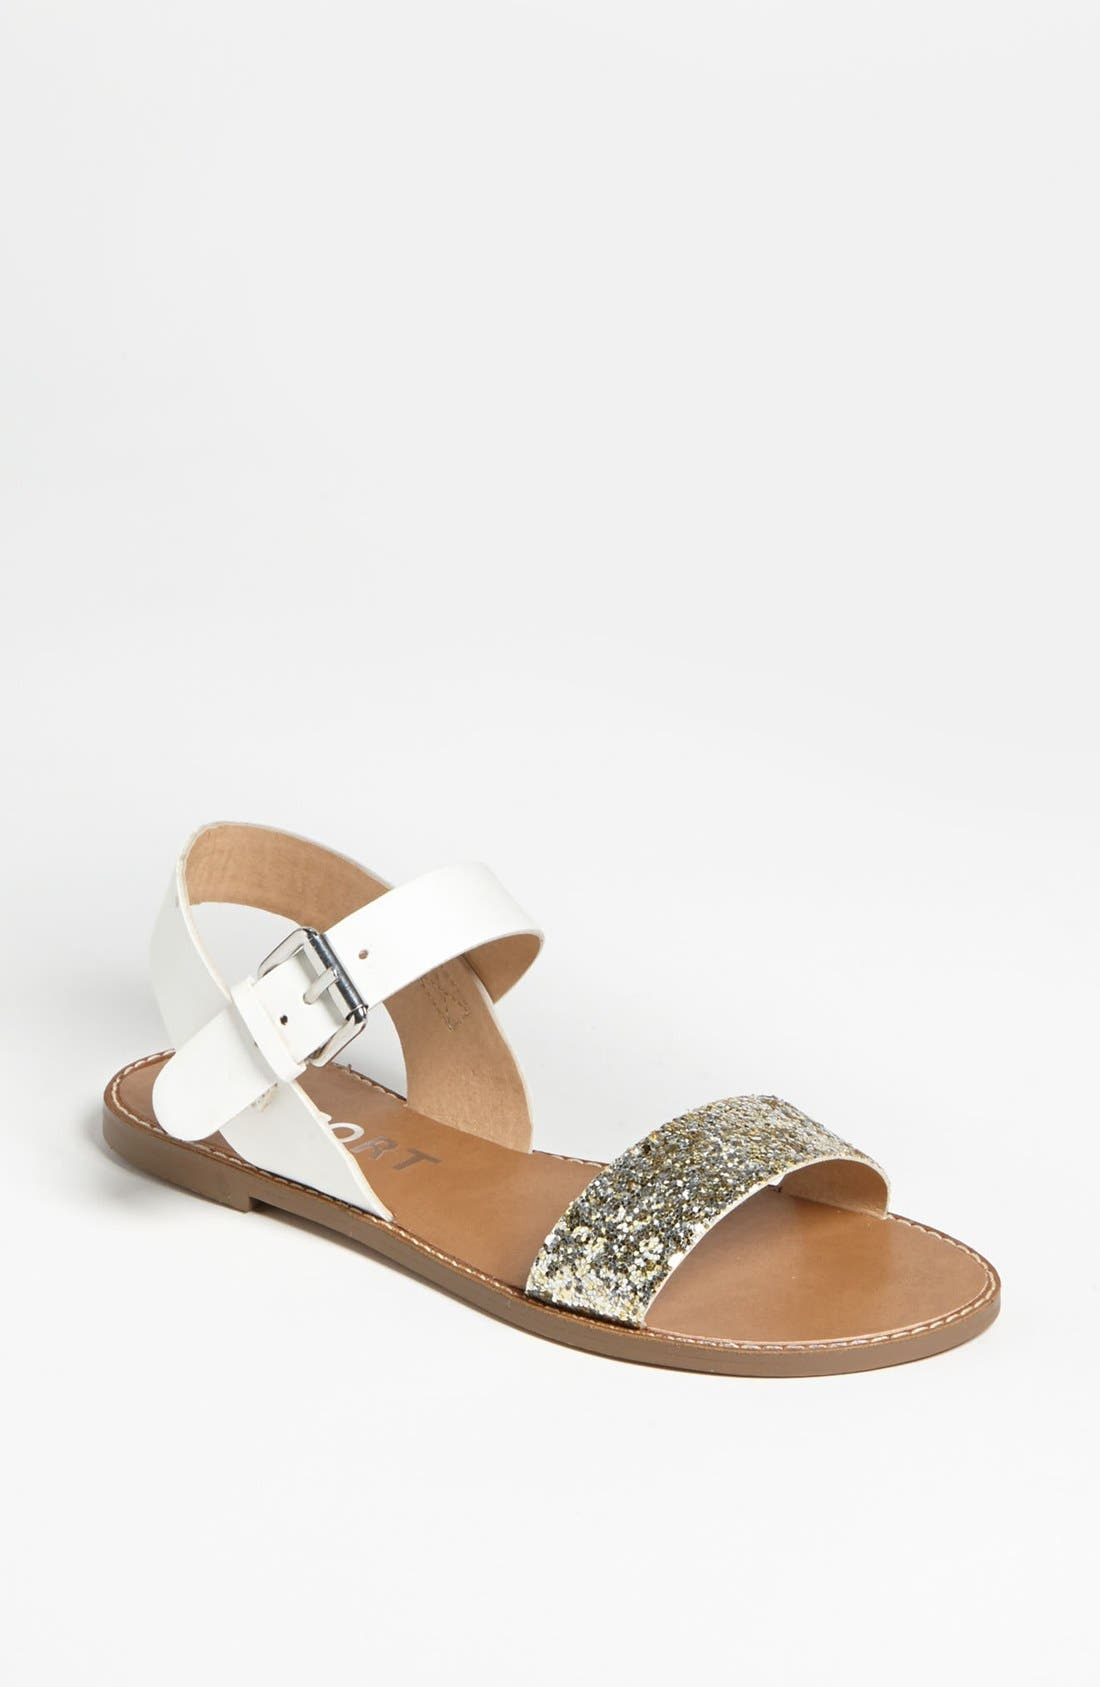 Alternate Image 1 Selected - Report 'Ellenton' Sandal